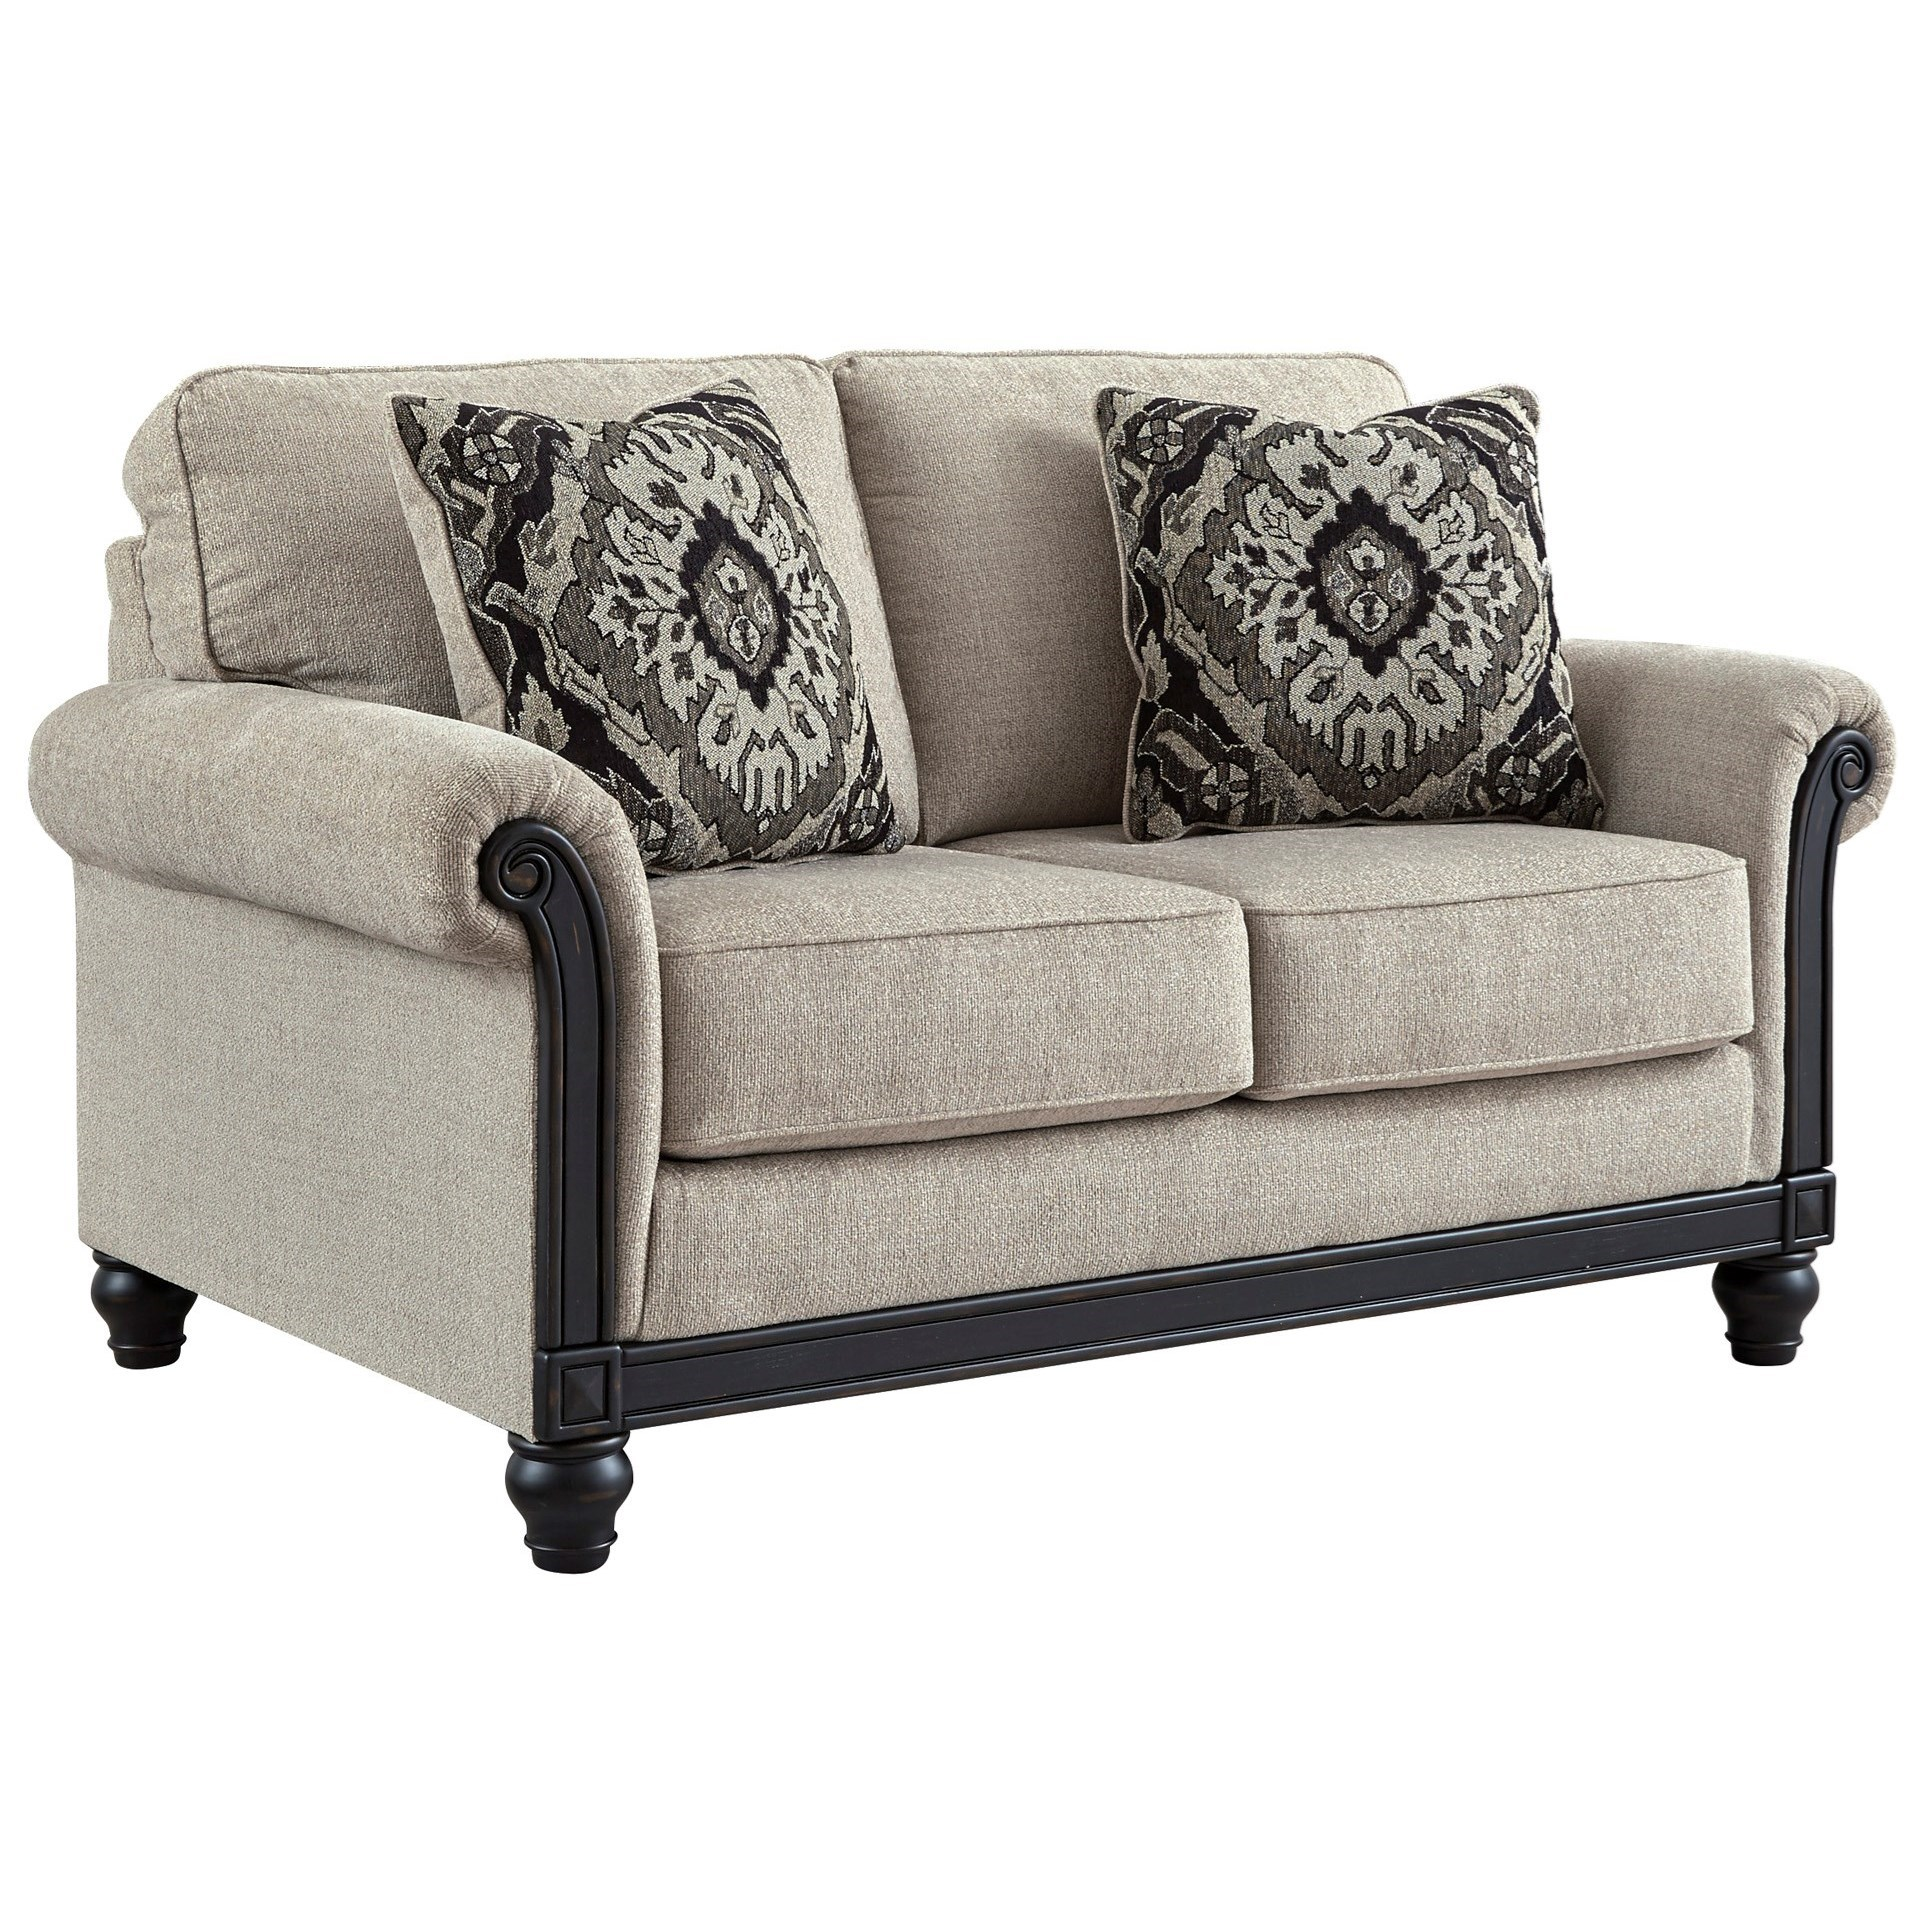 Benbrook Loveseat by Signature Design by Ashley at Beck's Furniture